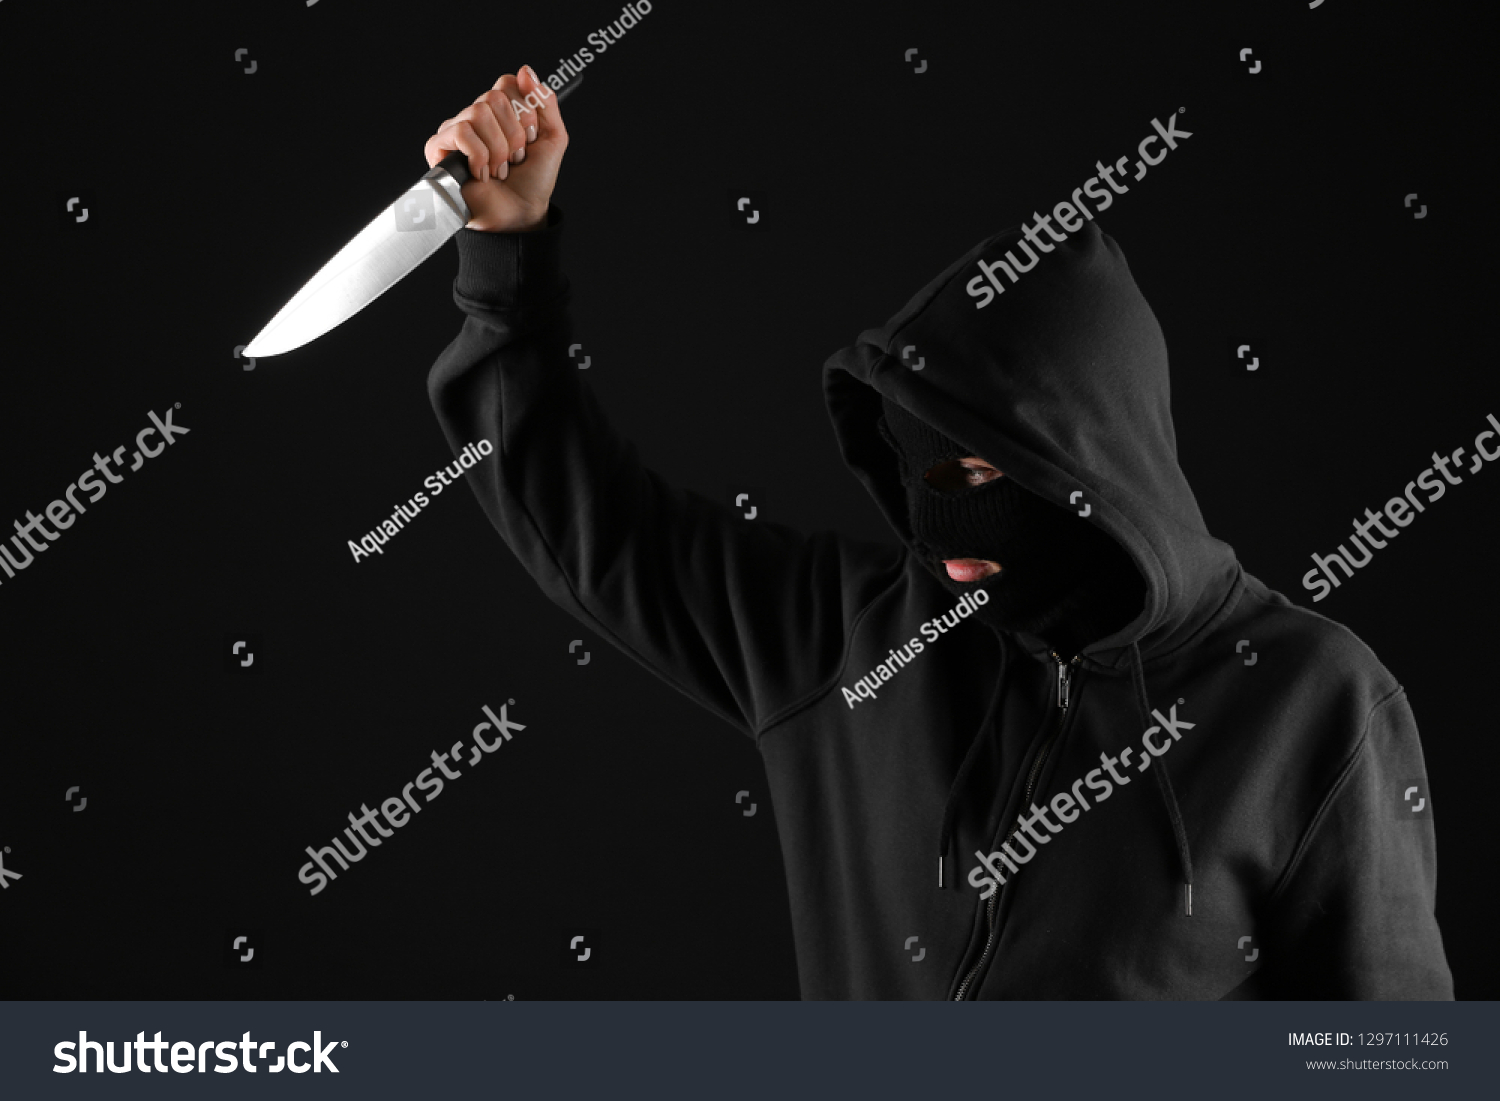 Bandit Knife On Dark Background Stock Photo Edit Now 1297111426 1500x1101